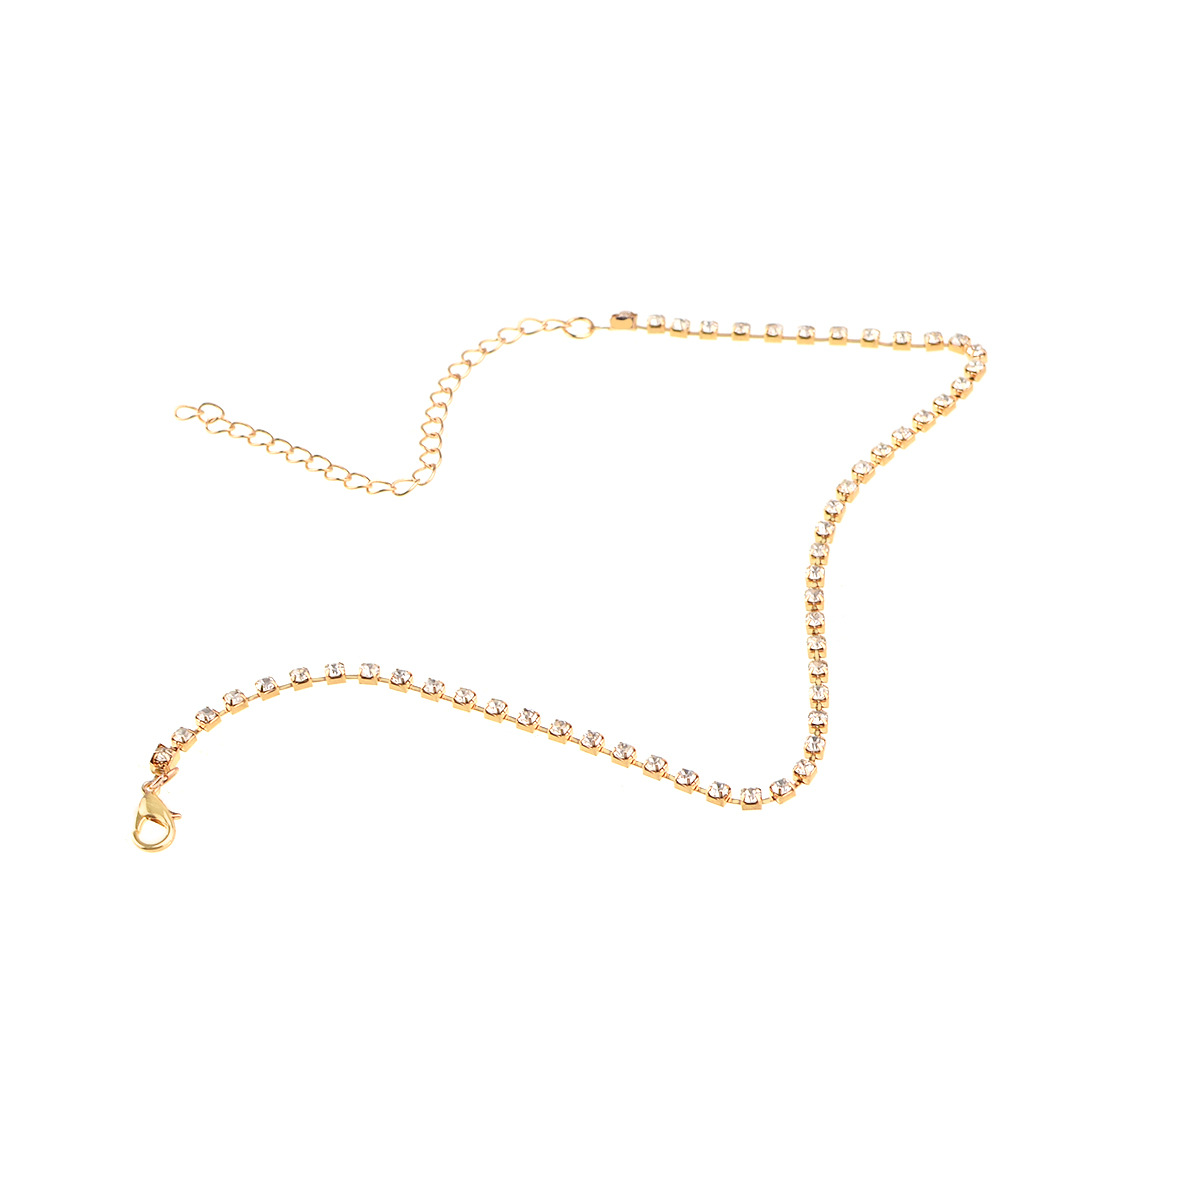 Simple street shot necklace diamond chain necklace necklace women NHXR194244